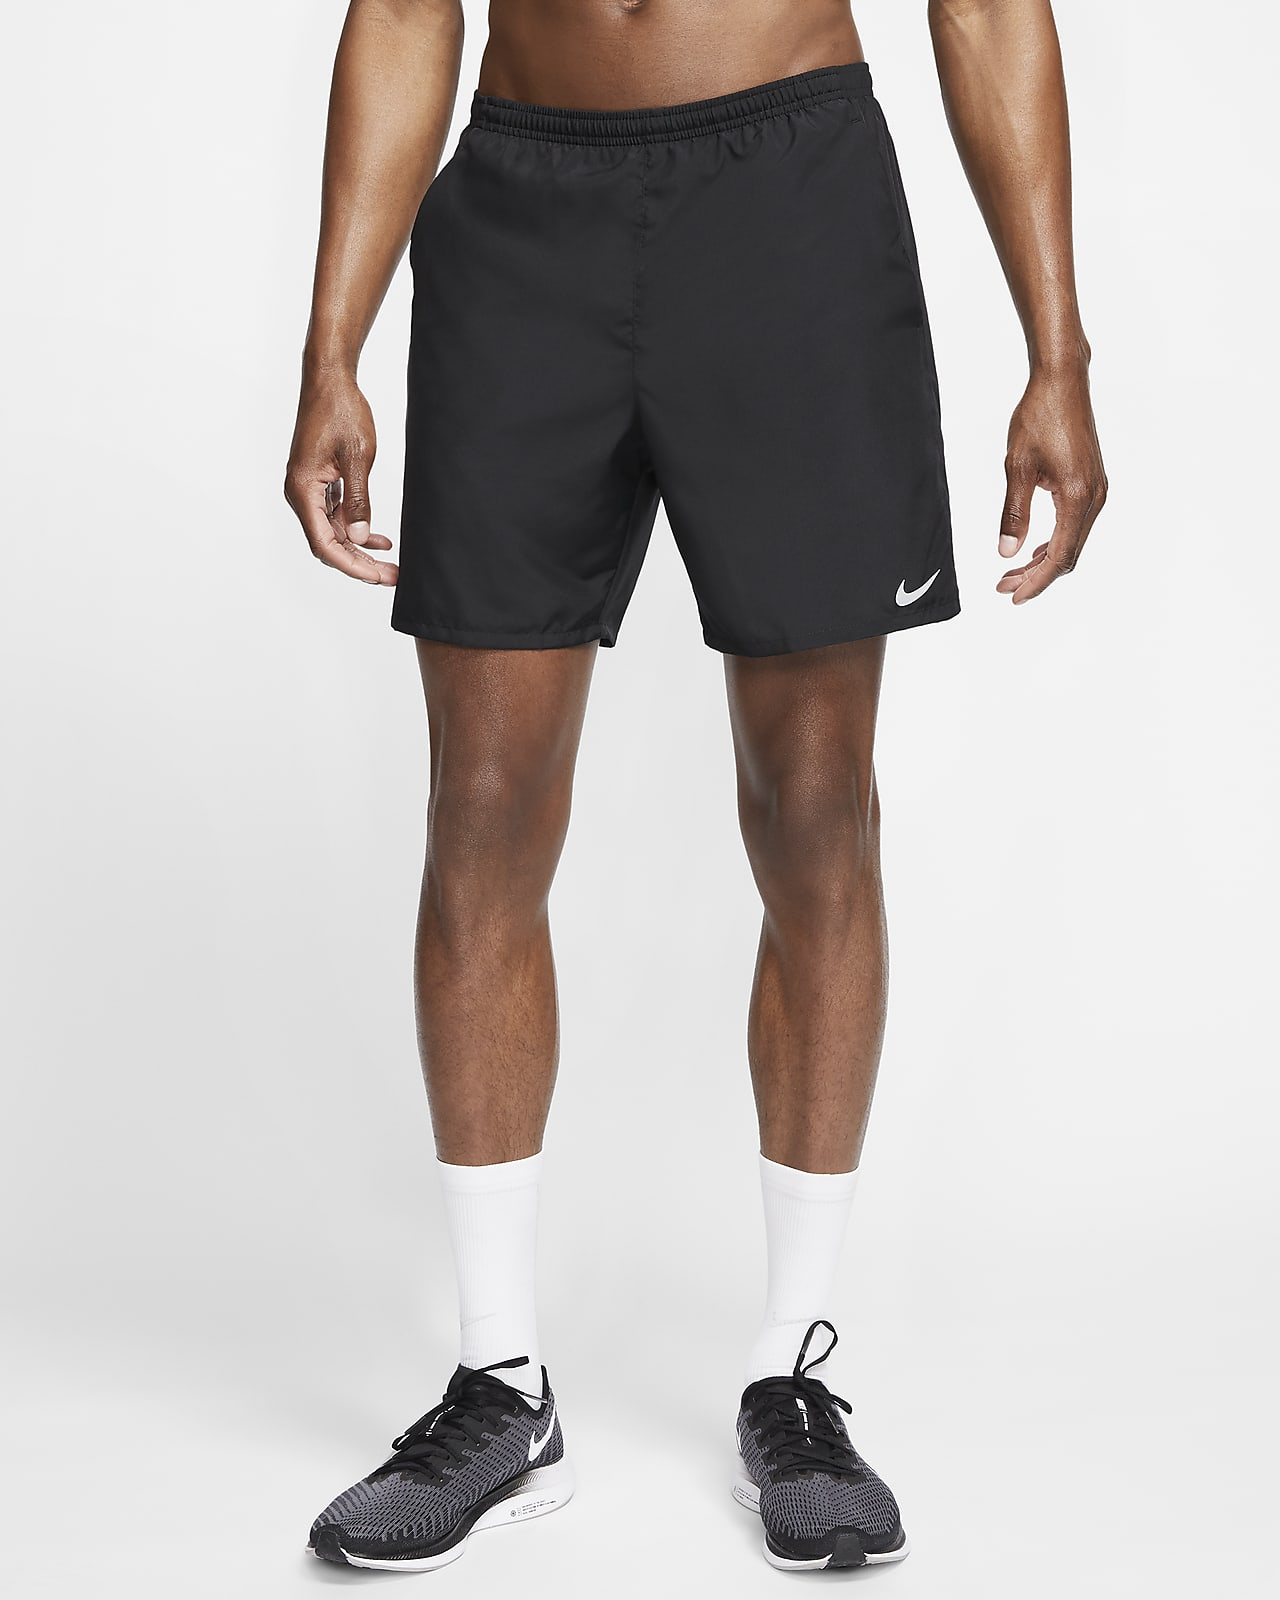 Short de running 18 cm Nike Dri-FIT Run pour Homme